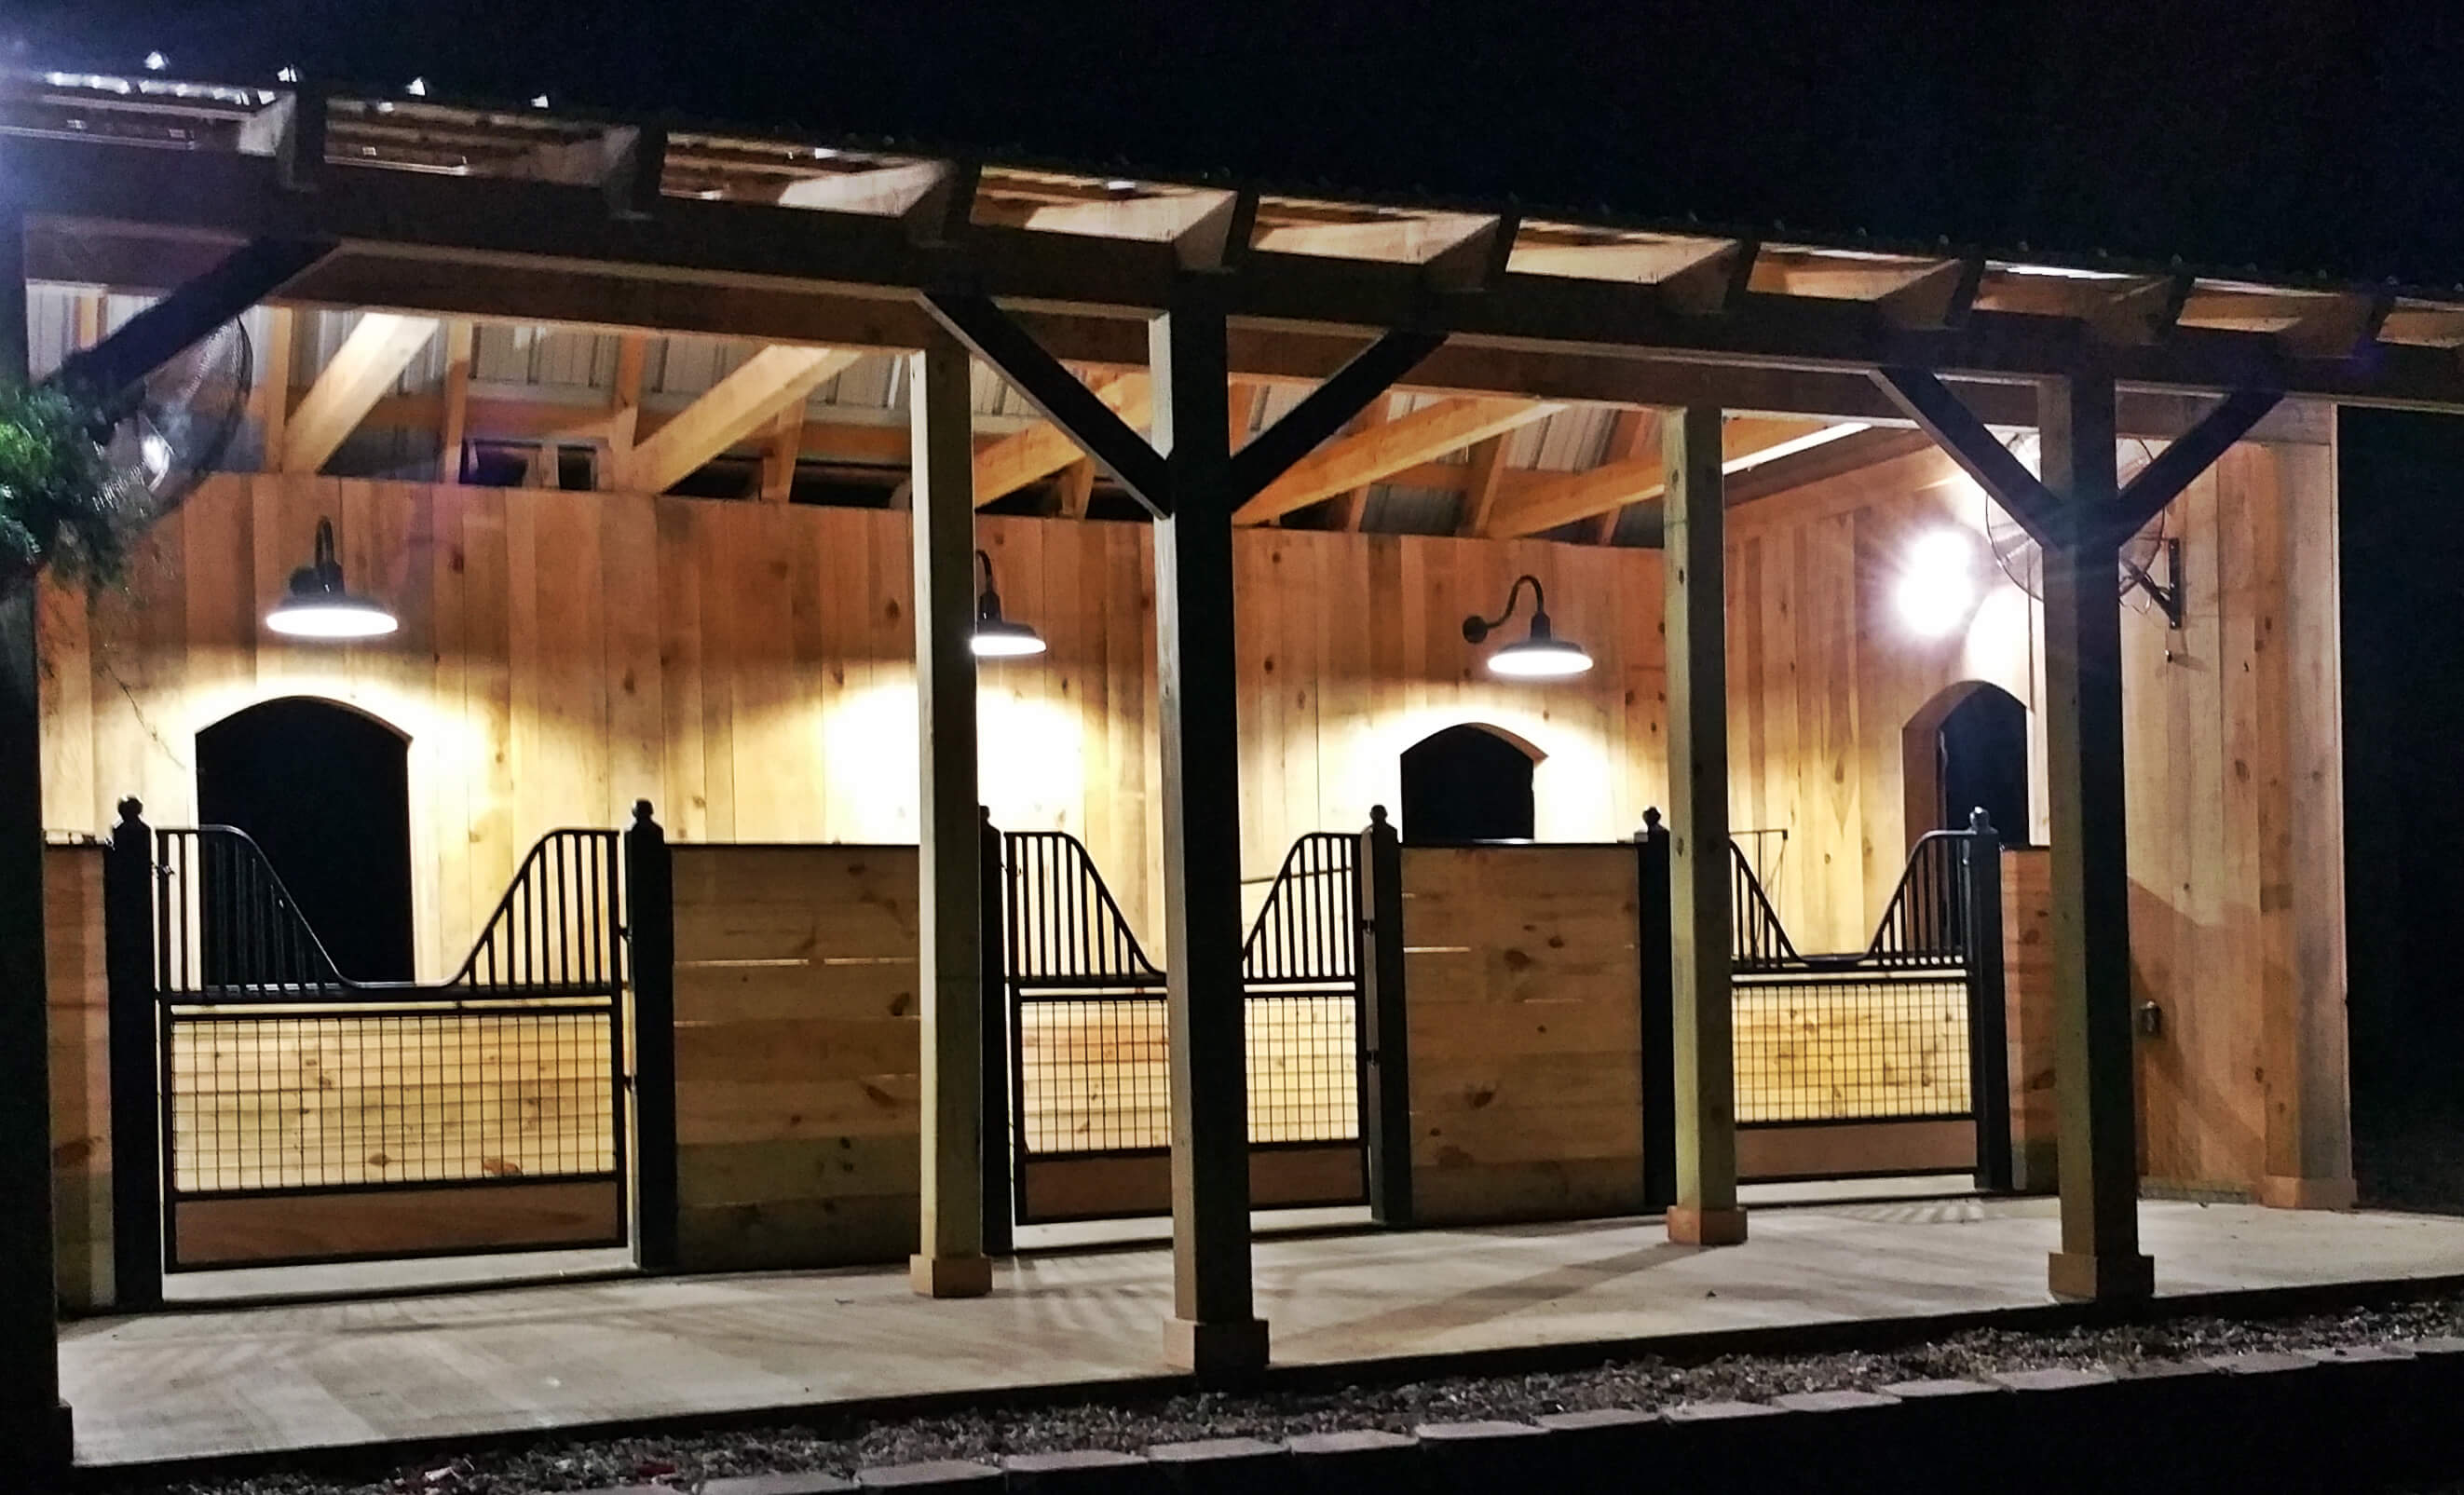 Hinged Stall Doors vs. Sliding Stall Doors – Choosing the Right Stall Doors for Your Horse Barn